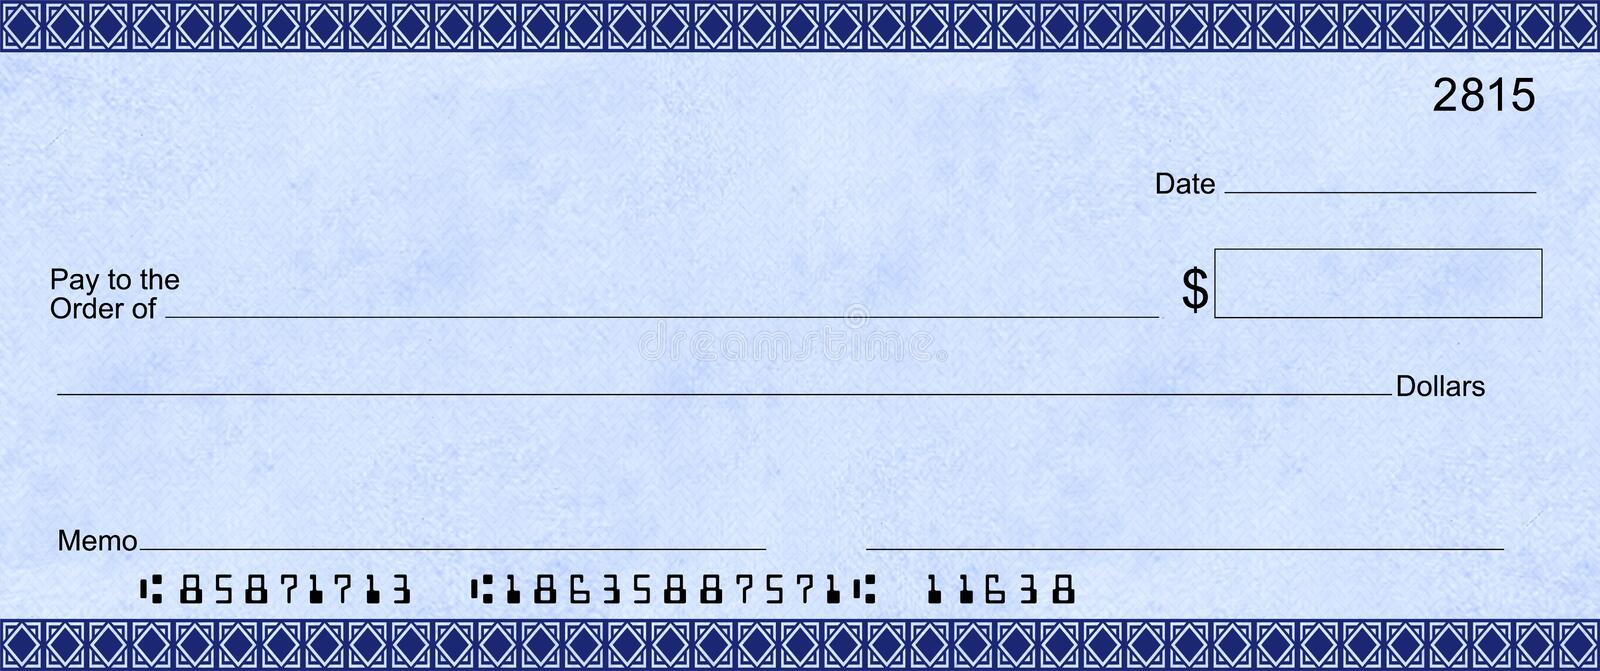 Blue Deco Check with false account numbers. Fake blank check that can be enlarged for sweepstakes or donations. Blank area to add company logo